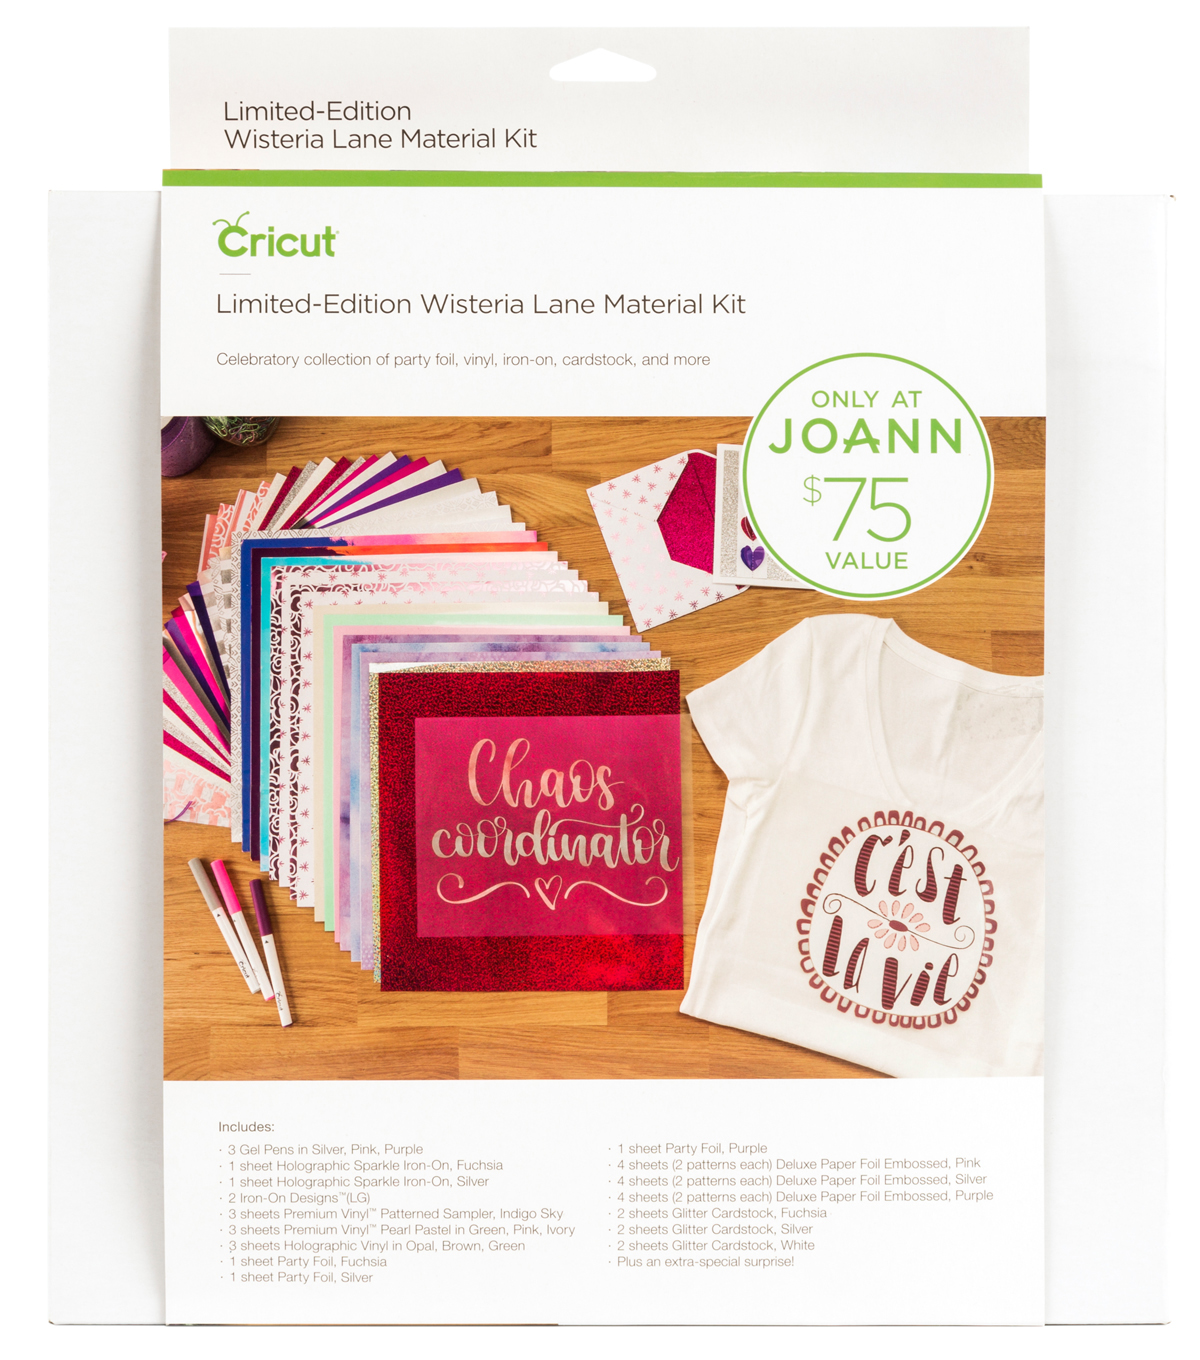 Cricut Limited Edition Wisteria Lane Material Kit